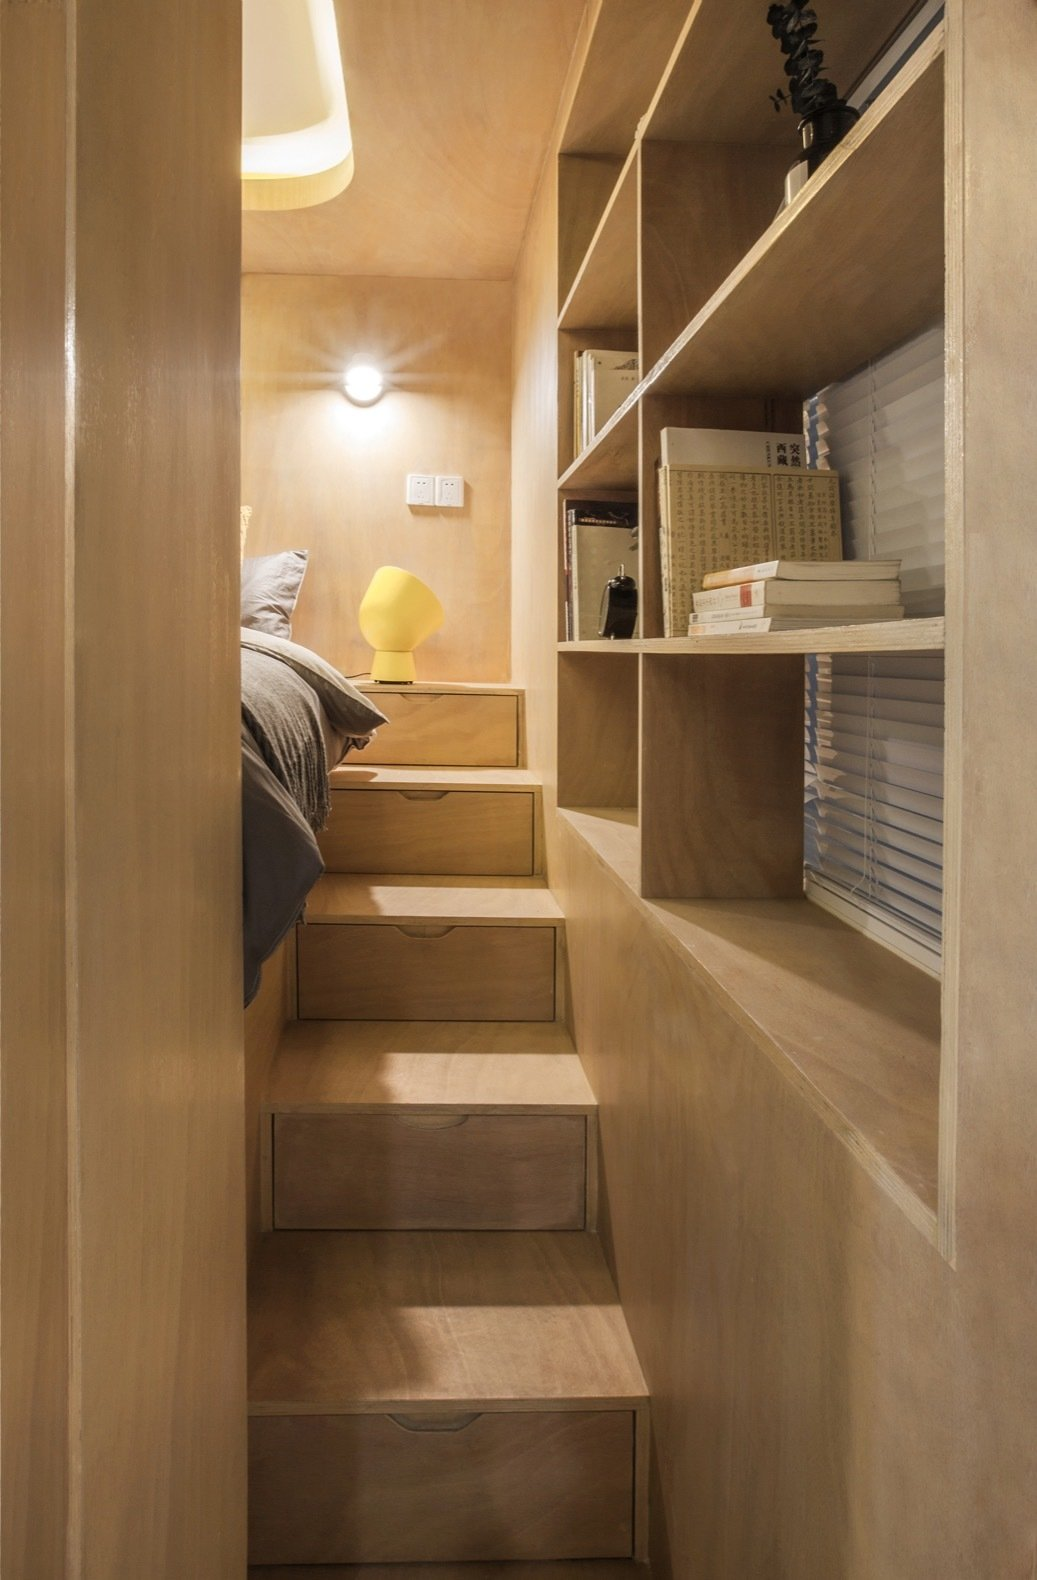 Bedroom, Shelves, Bed, Medium Hardwood, Table, and Wall The second staircase is skinnier and sandwiched between the bed and window.    Best Bedroom Wall Bed Shelves Photos from Rotated Volumes Cleverly Maximize Space in a Tiny Shanghai Apartment